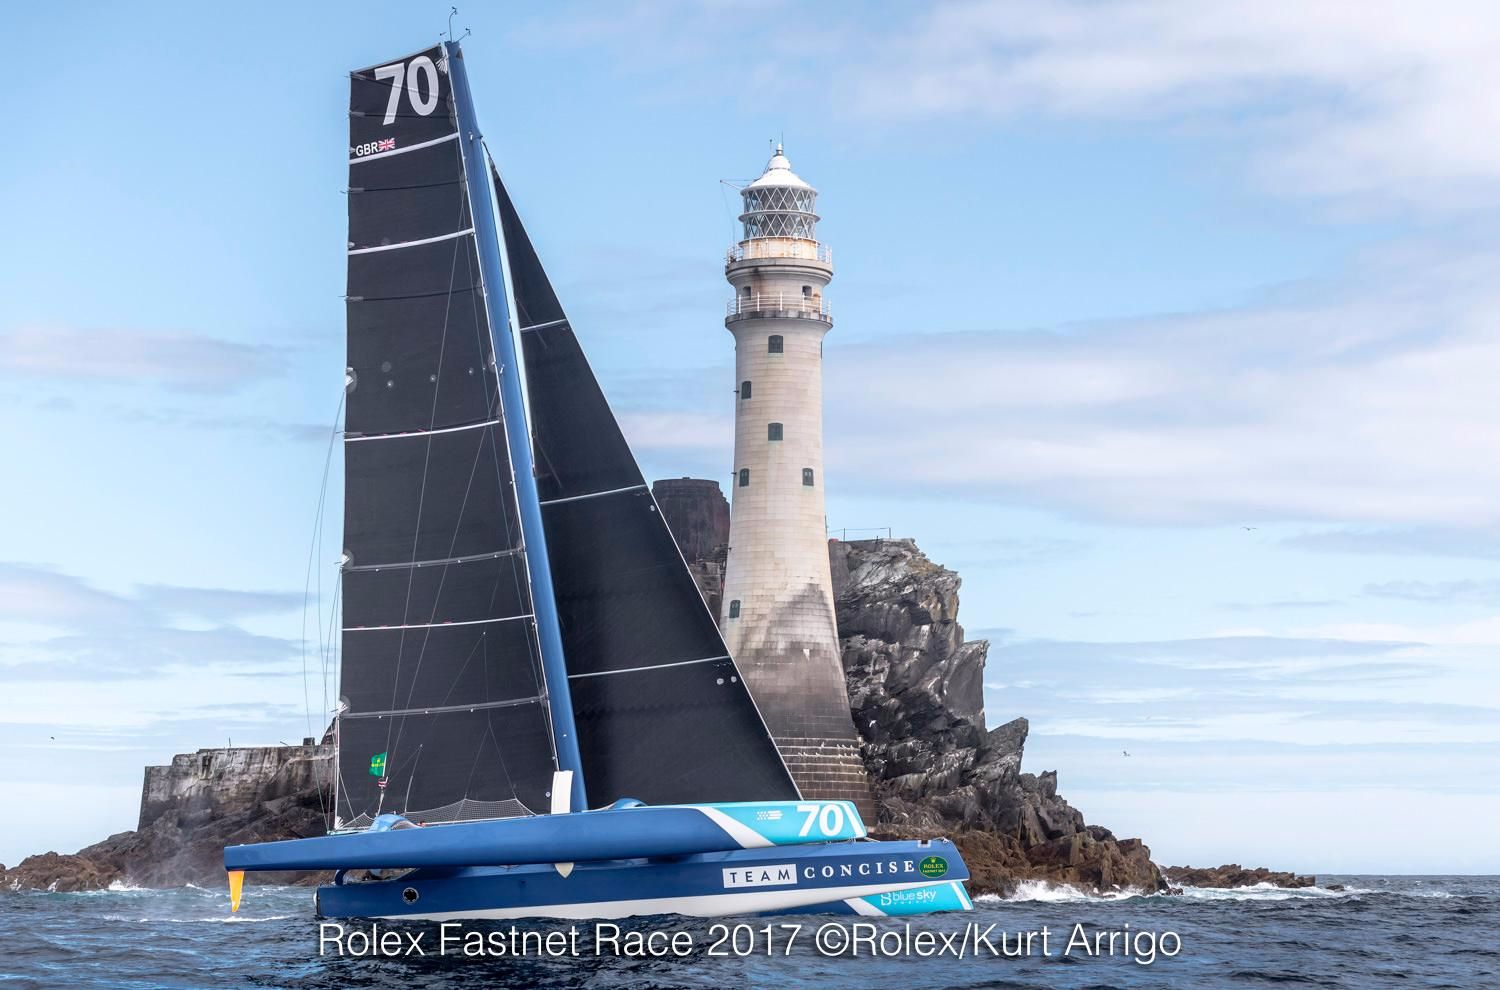 First around the Fastnet Rock and Multihull Line Honours for Tony Lawson's MOD70 Concise 10 © Rolex/Kurt Arrigo